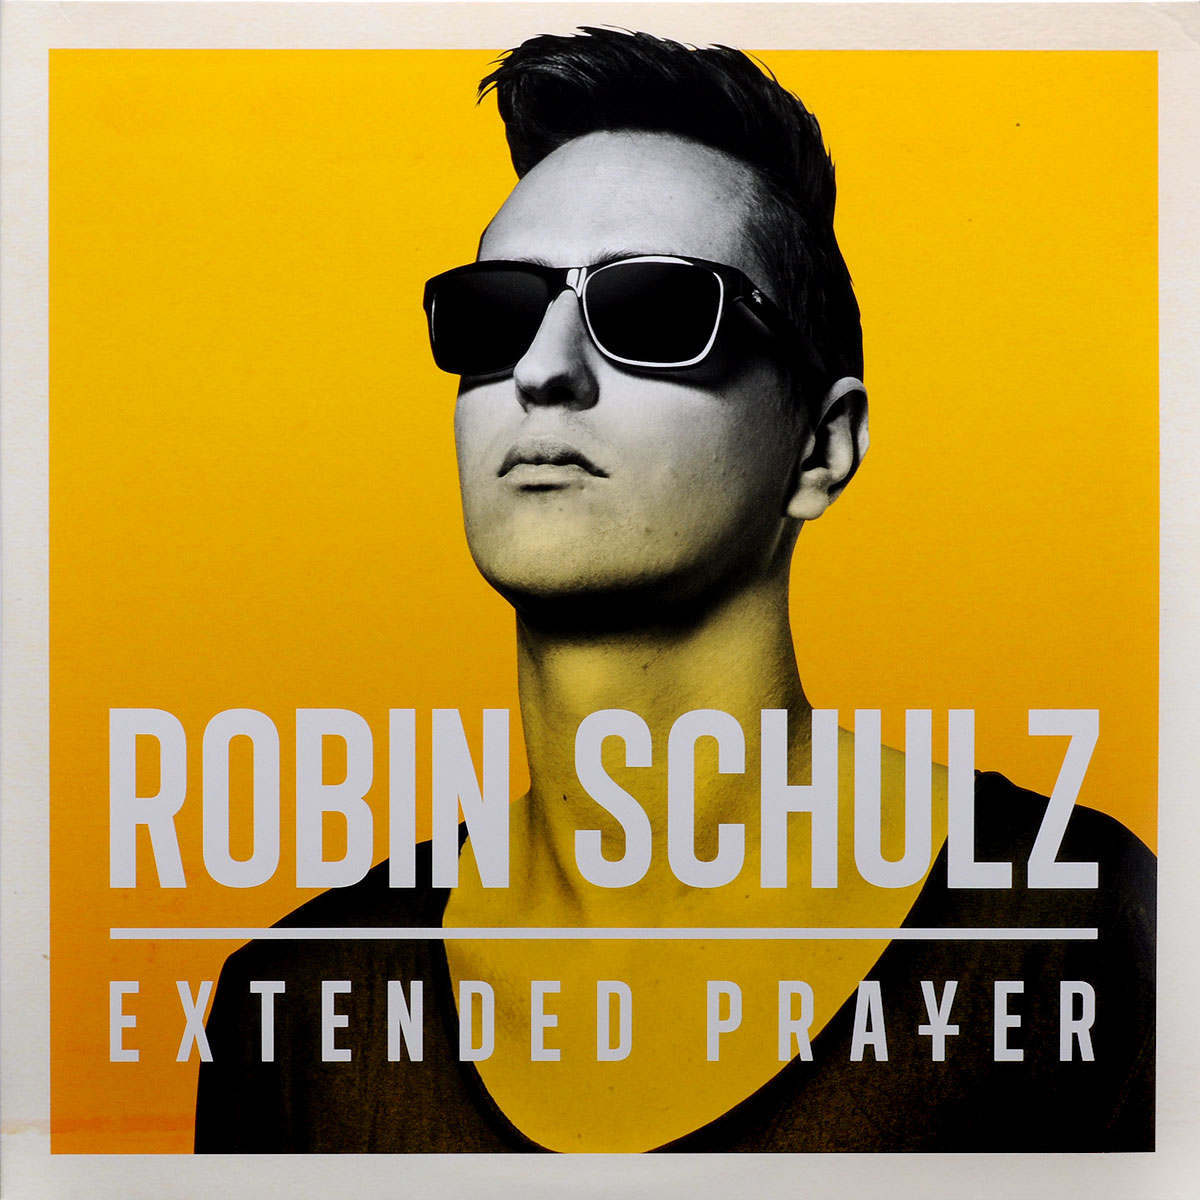 Робин Шульц Robin Schulz. Extended Prayer (3 LP) дресс код black tie для мужчин фото